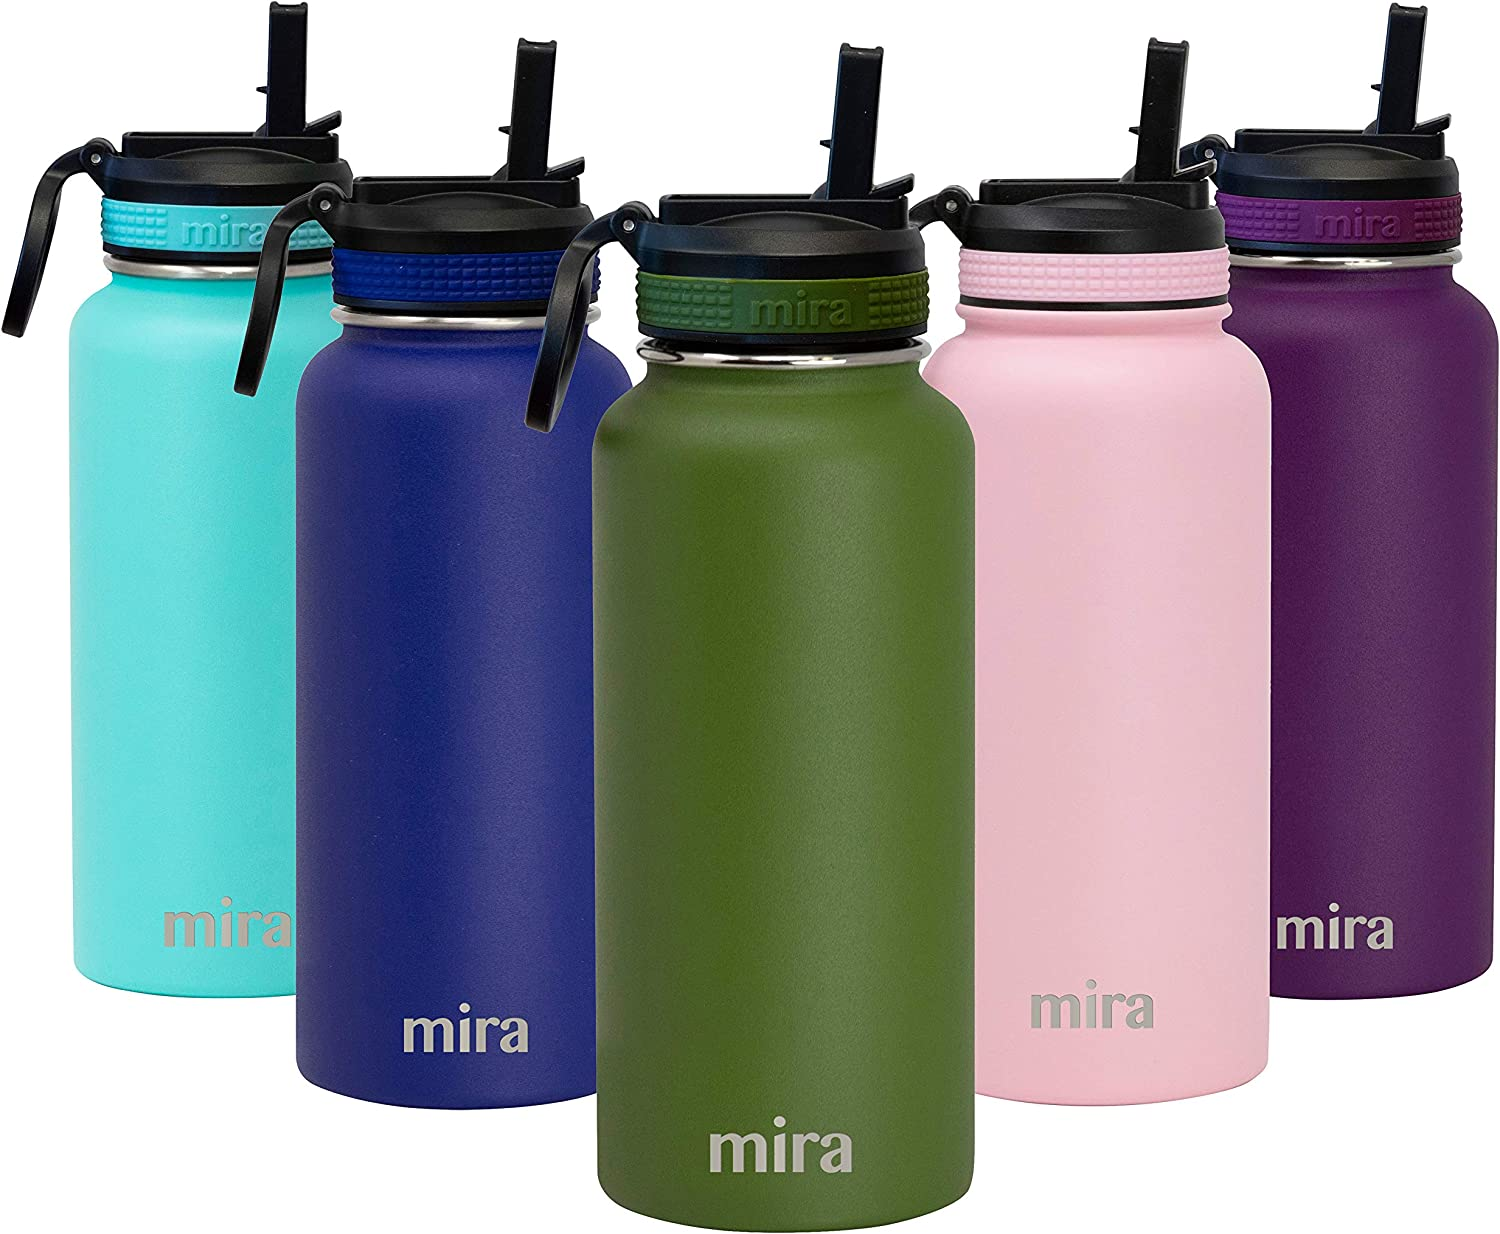 MIRA 32 oz Stainless Steel Water Bottle with Straw Lid - Hydro Vacuum Insulated Metal Thermos Flask Keeps Cold for 24 Hours, Hot for 12 Hours - BPA-Free Straw Cap - Olive Green